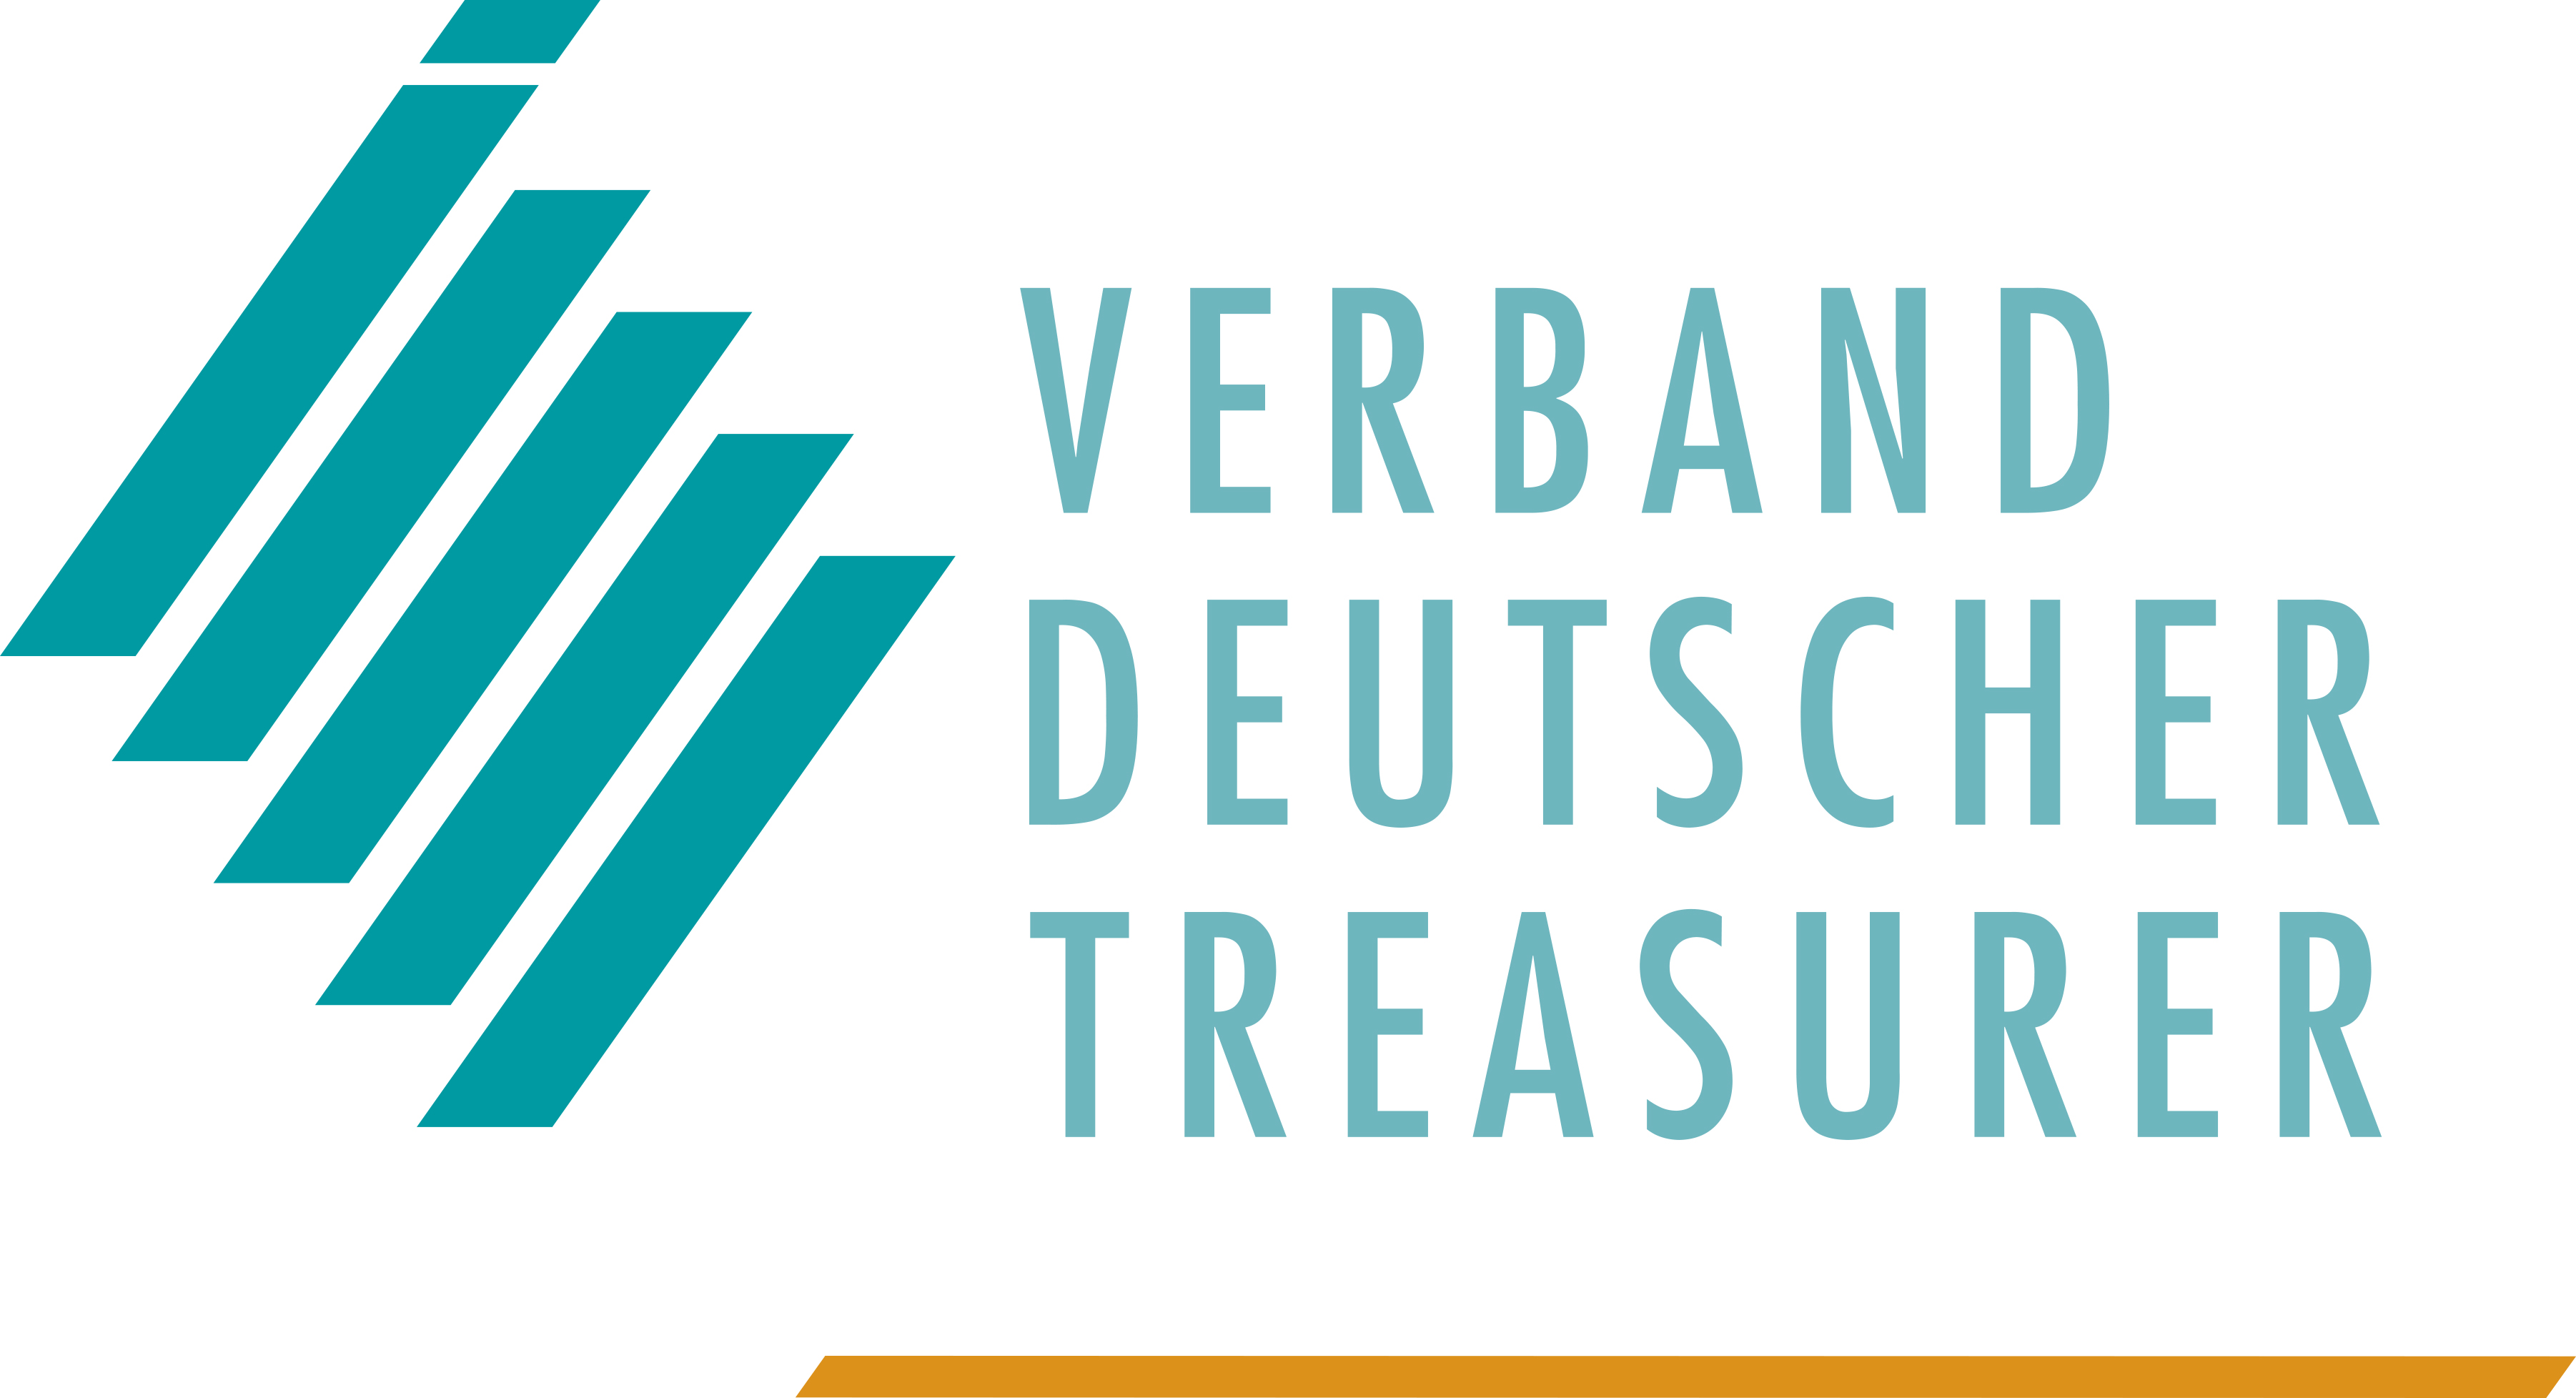 Verband Deutscher Treasurer e.V.